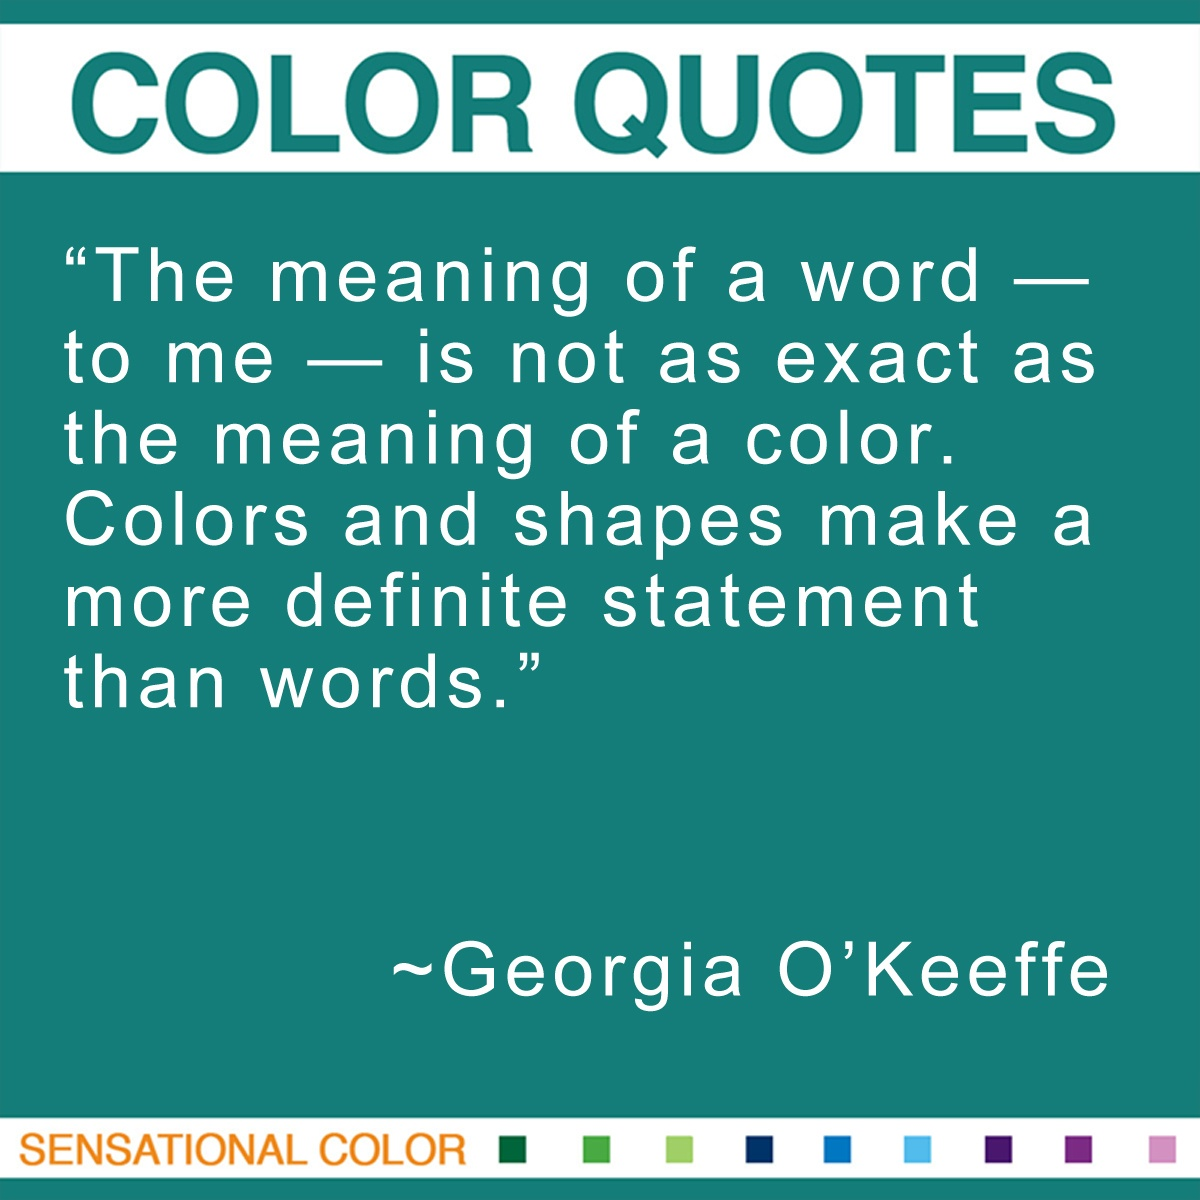 """The meaning of a word — to me — is not as exact as the meaning of a color. Colors and shapes make a more definite statement than words."" - Georgia O'Keeffe"